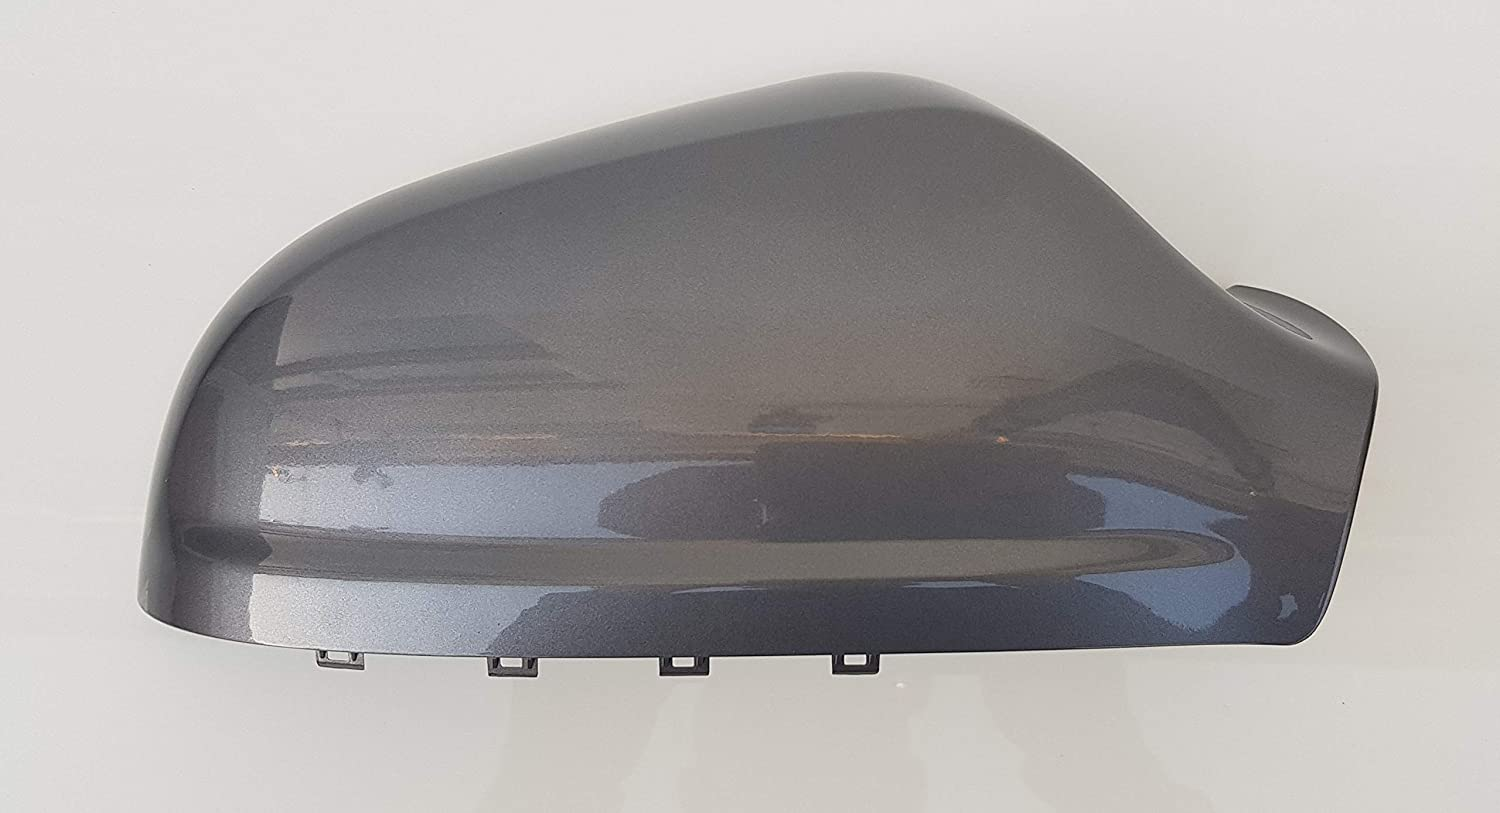 Facelift Wing Mirror Cover RHS (Star Silver) LT2 Car Parts